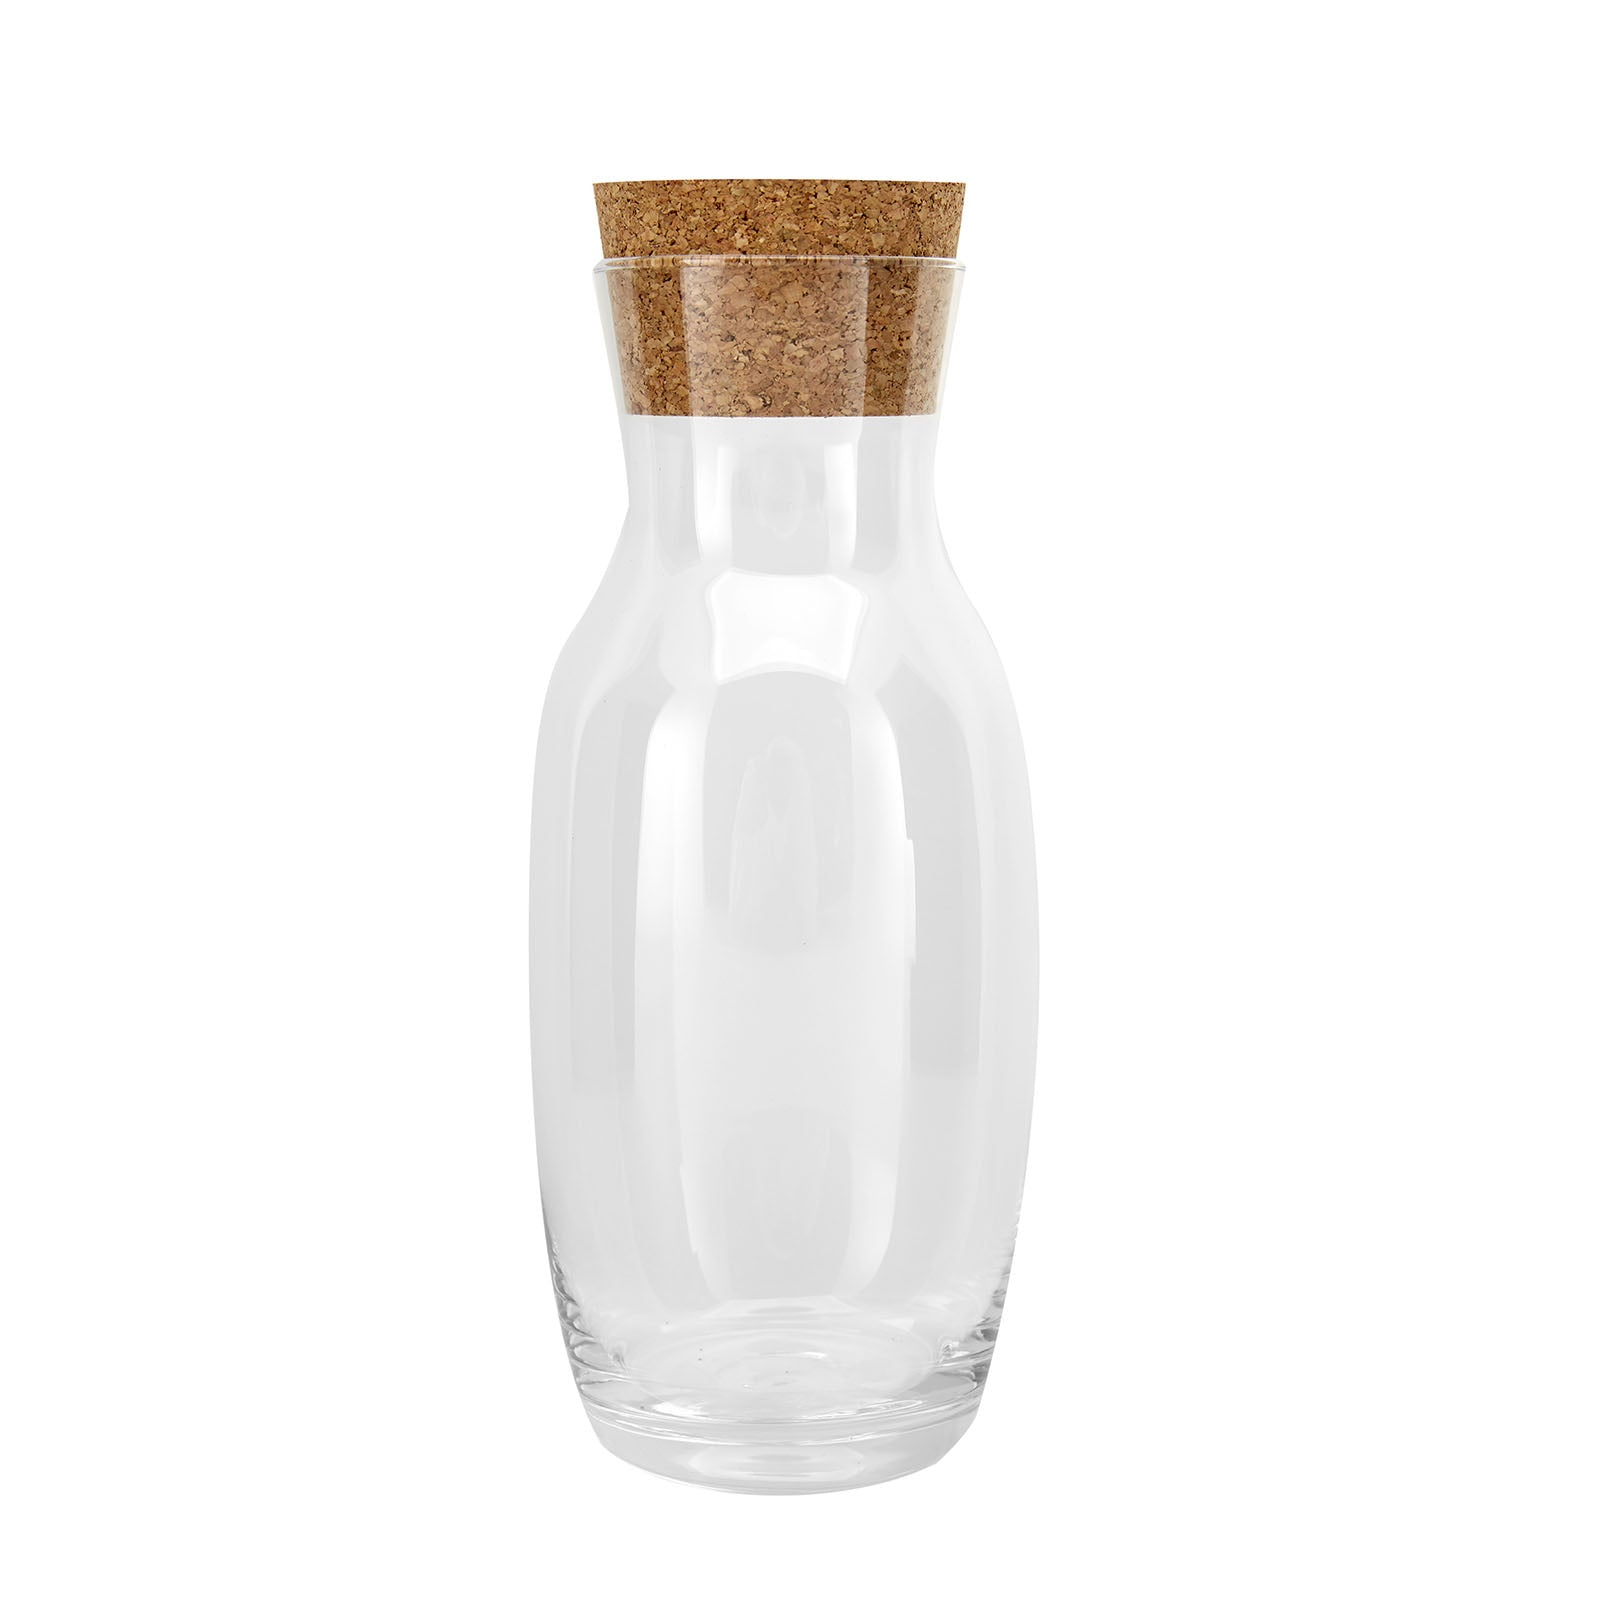 Karaca Krs Bedside Jug with Cork Stopper 59-7176-1000-a00 153.03.07.6210